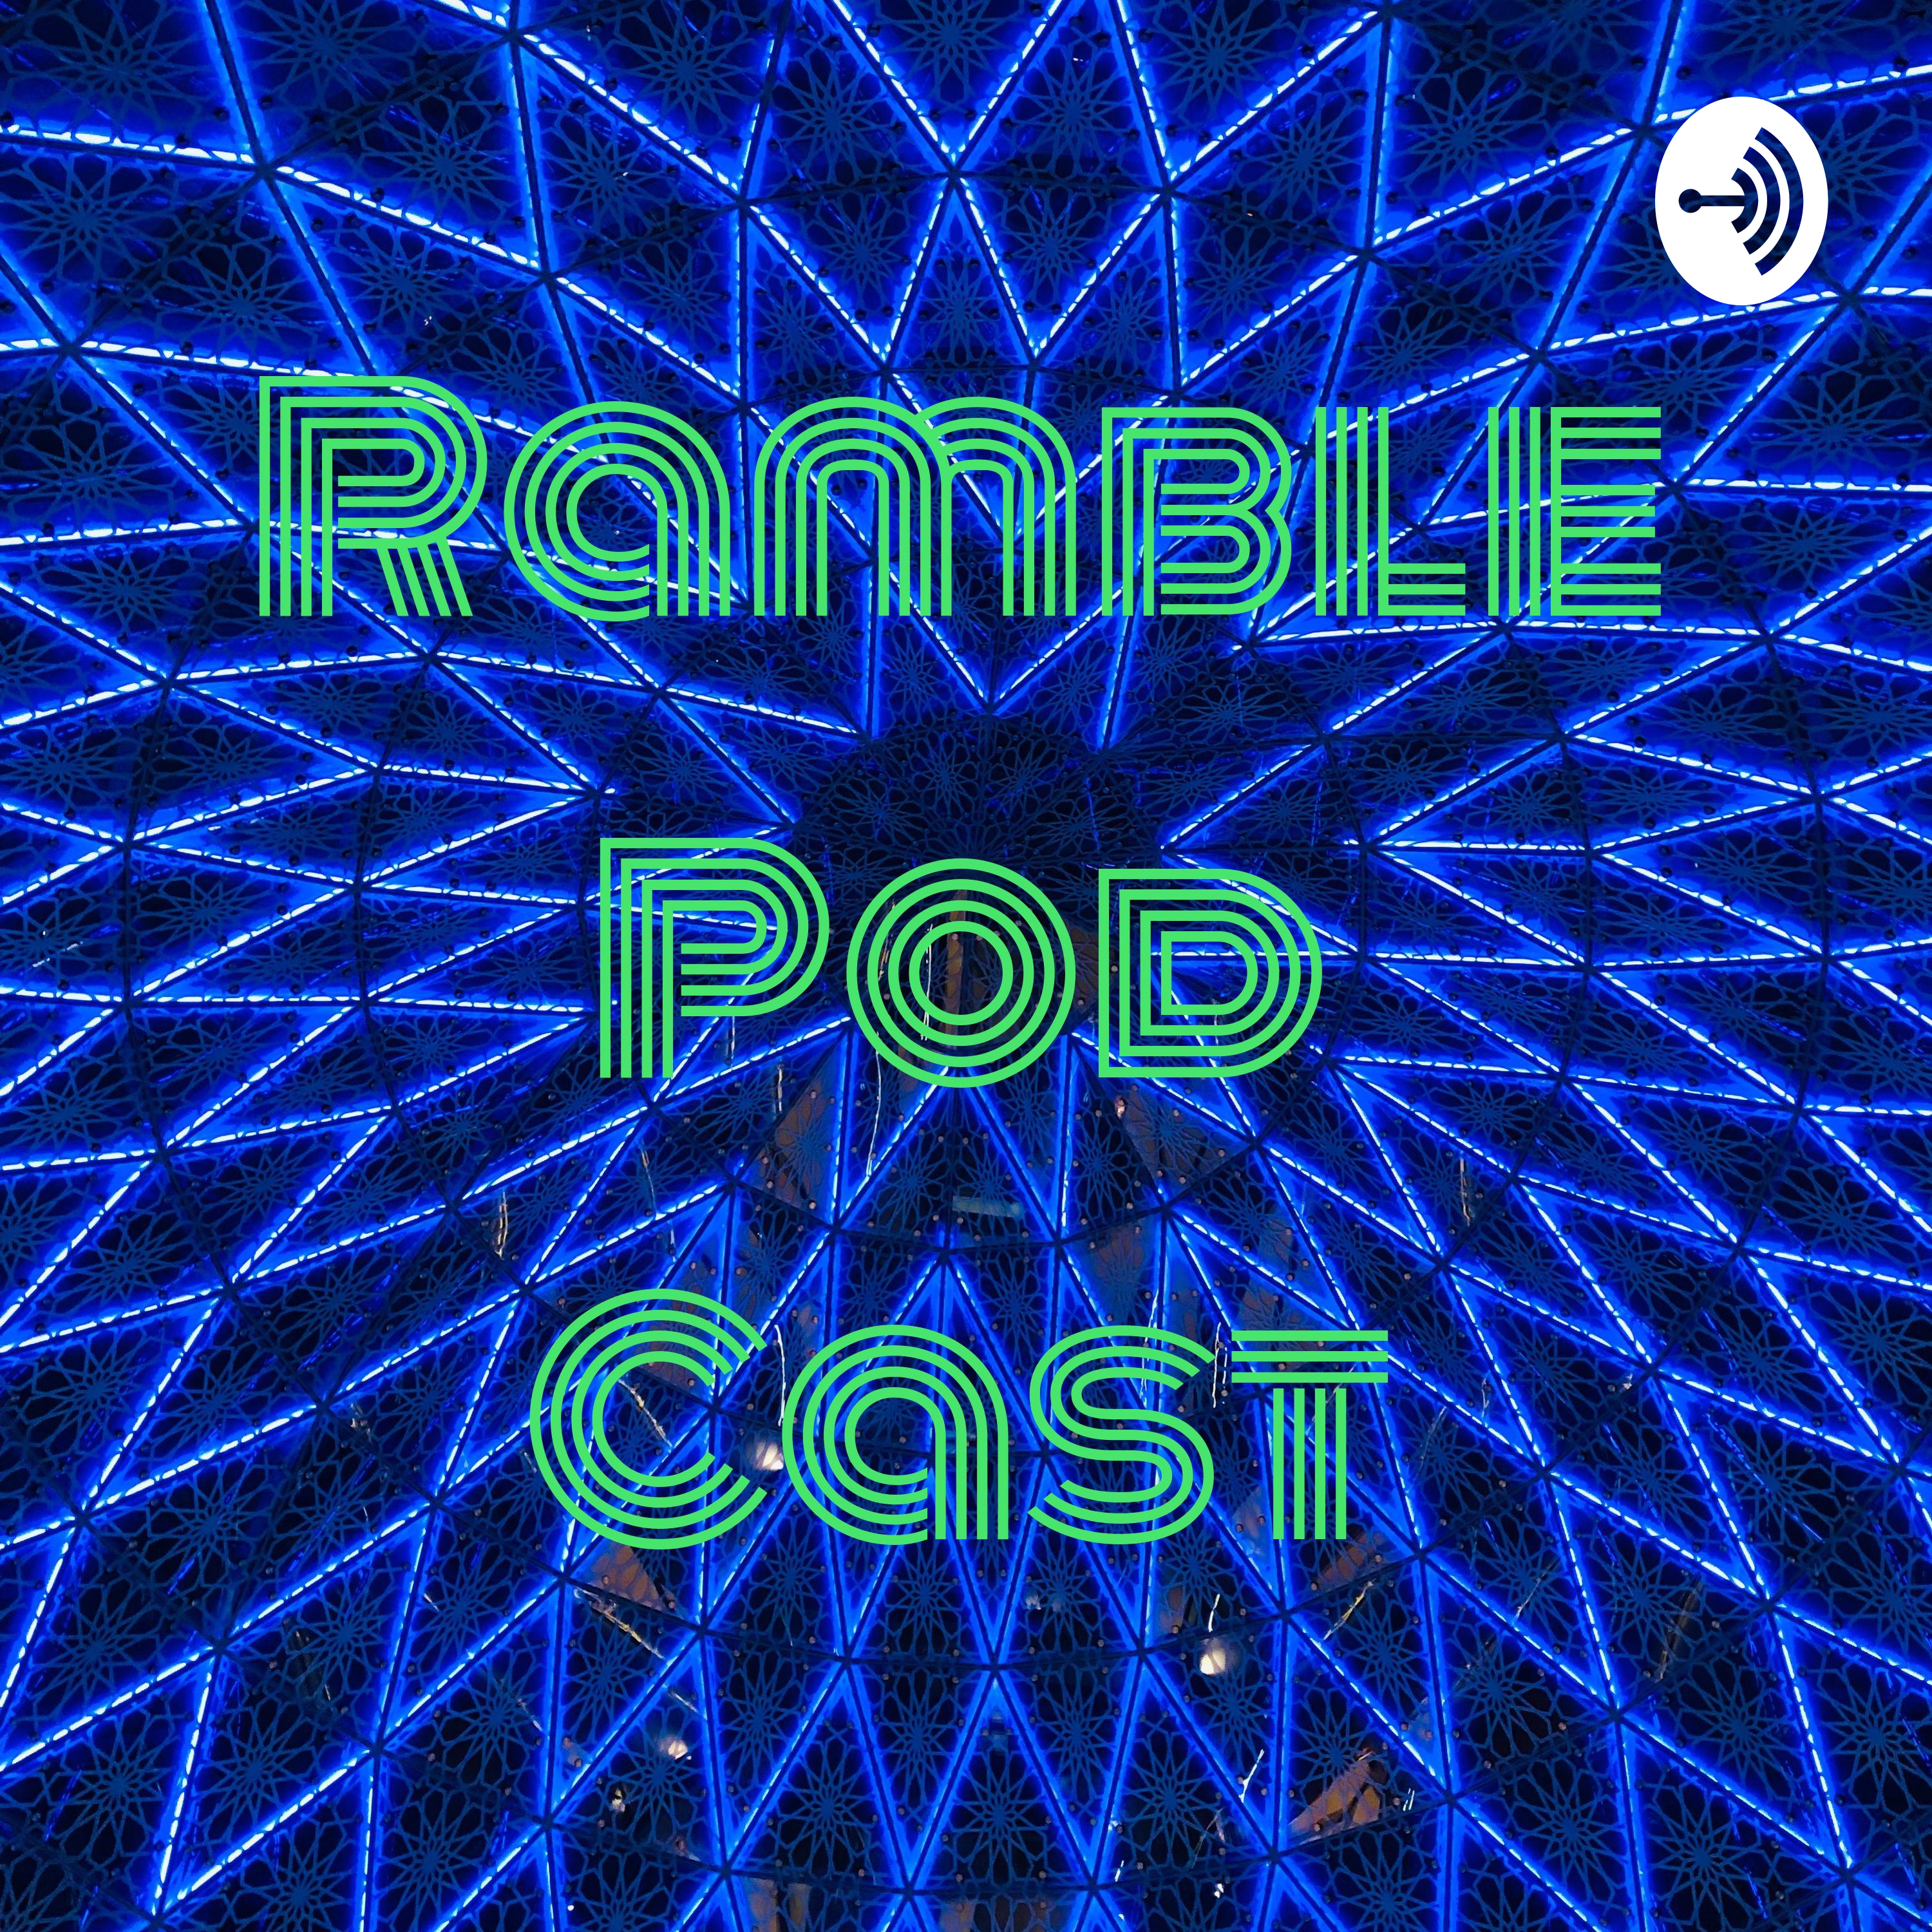 Welcome to my podcast channel